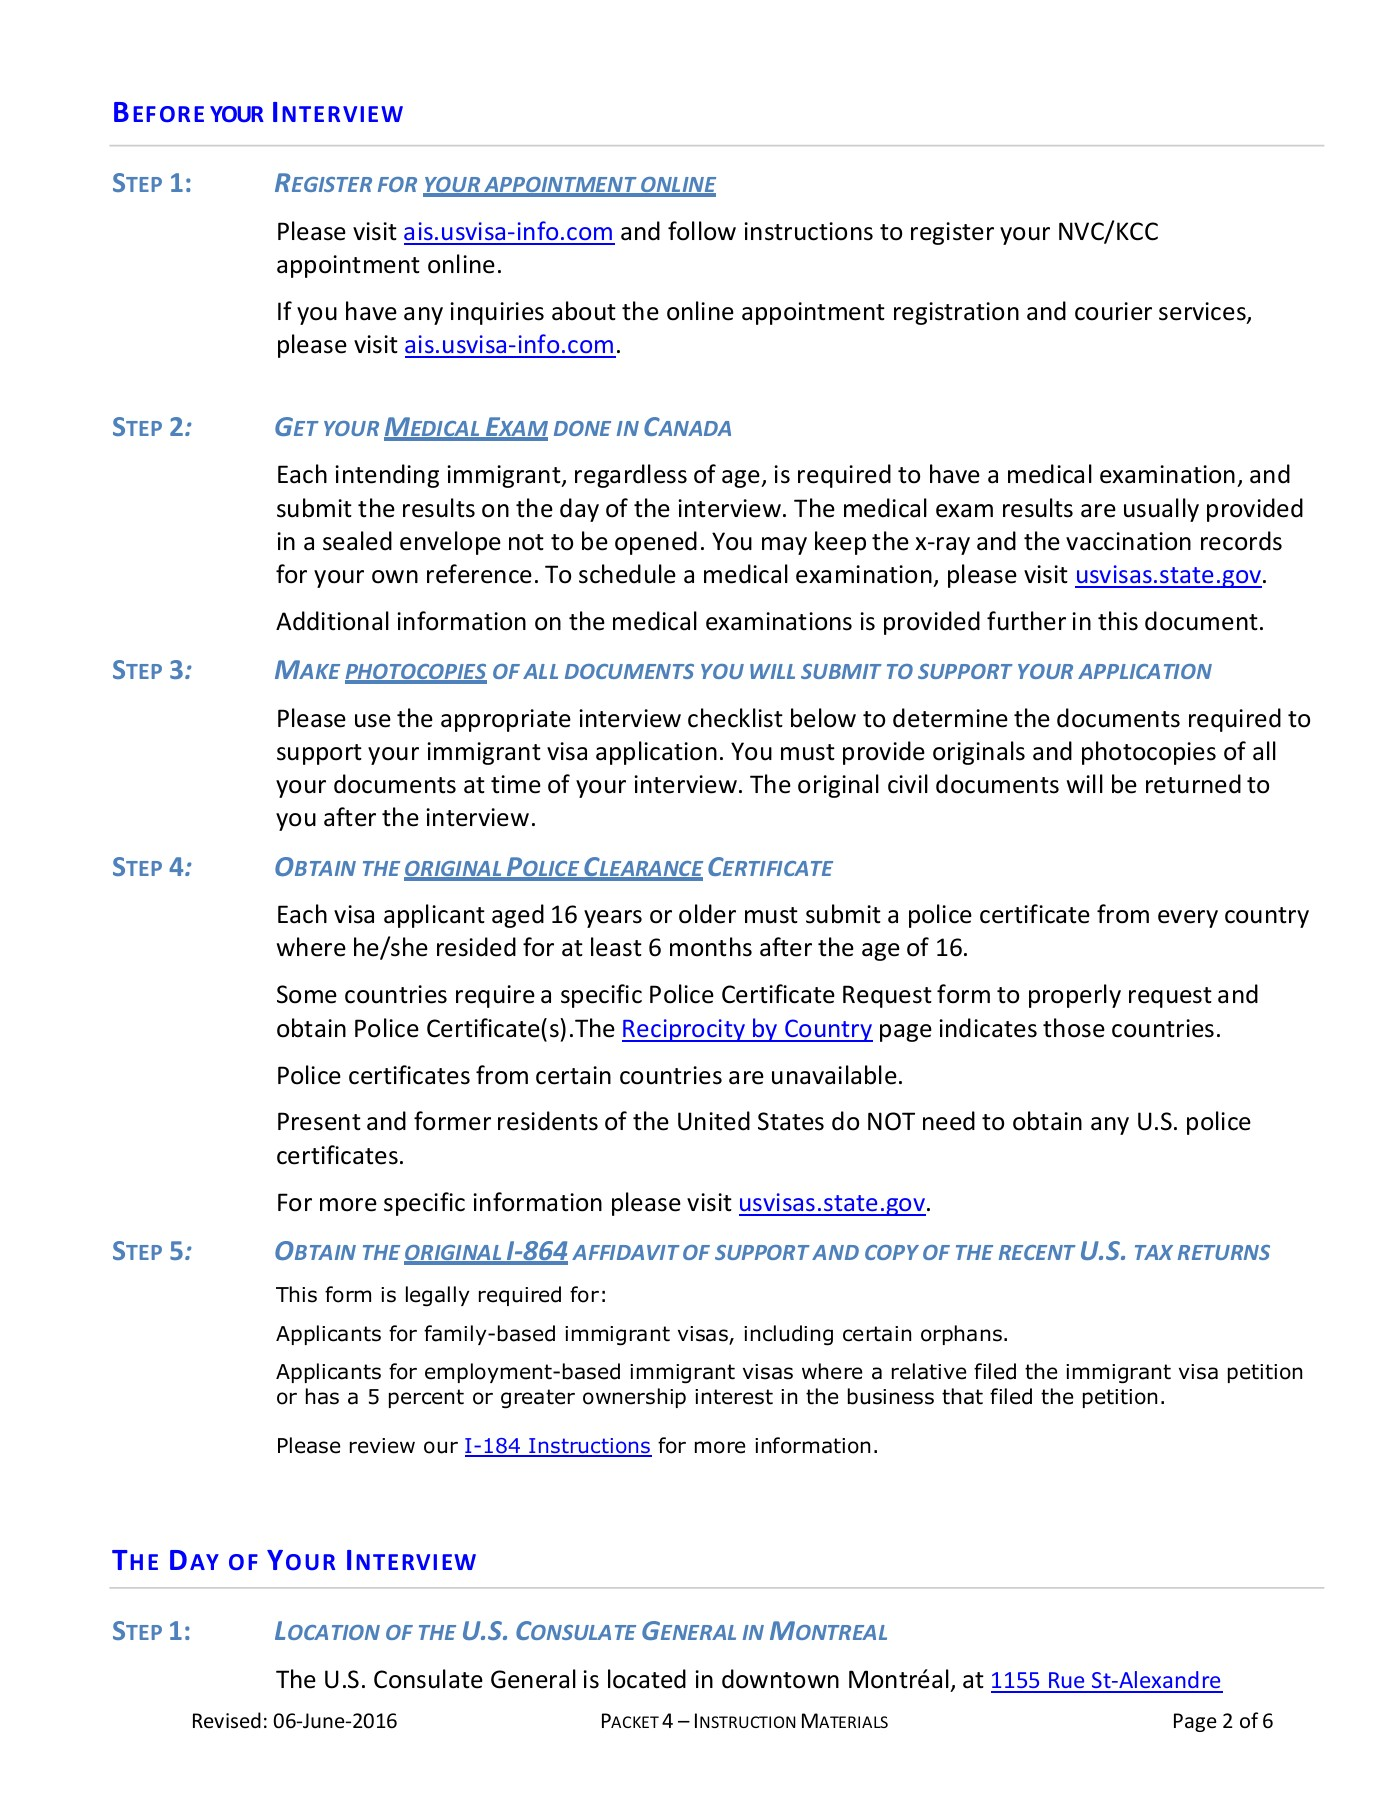 ACKET NSTRUCTI ON M - travel state gov Pages 1 - 10 - Text